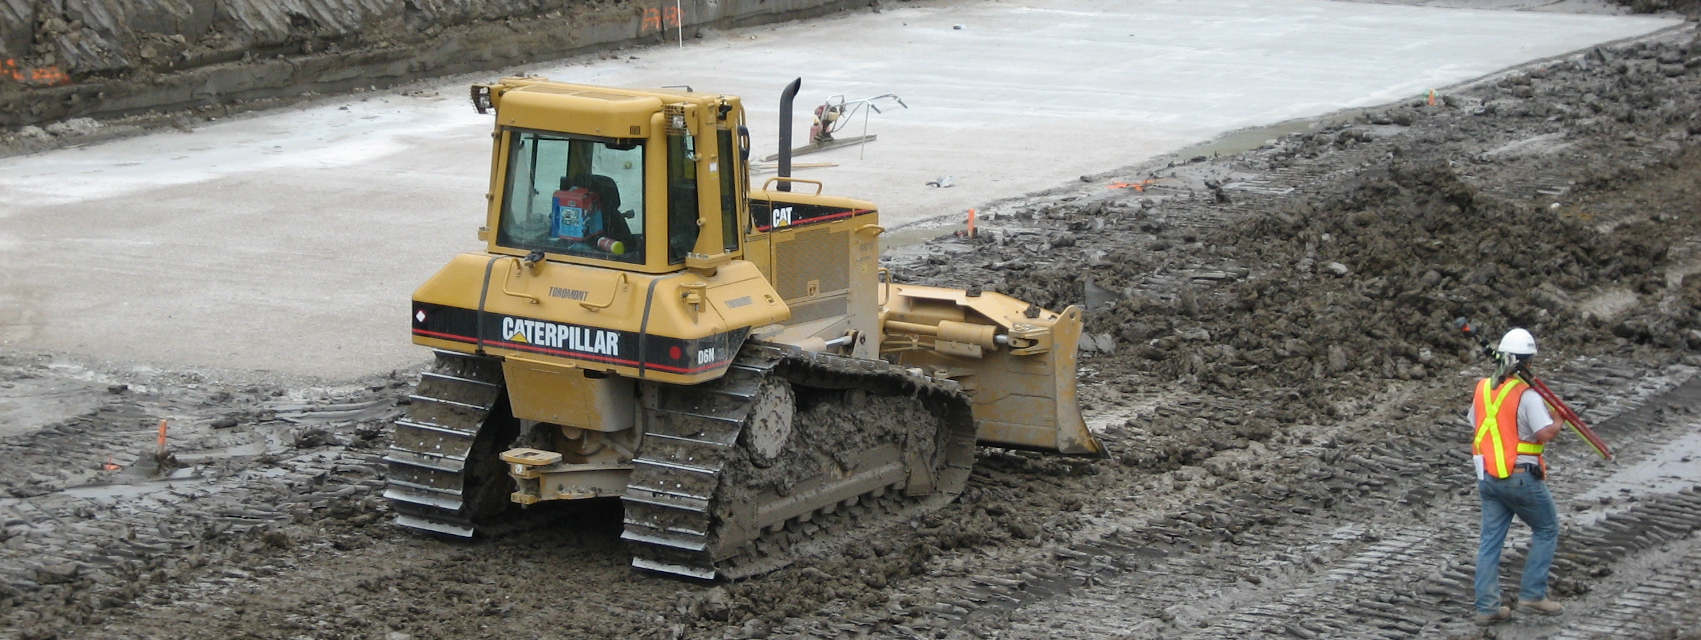 bulldozer in construction area